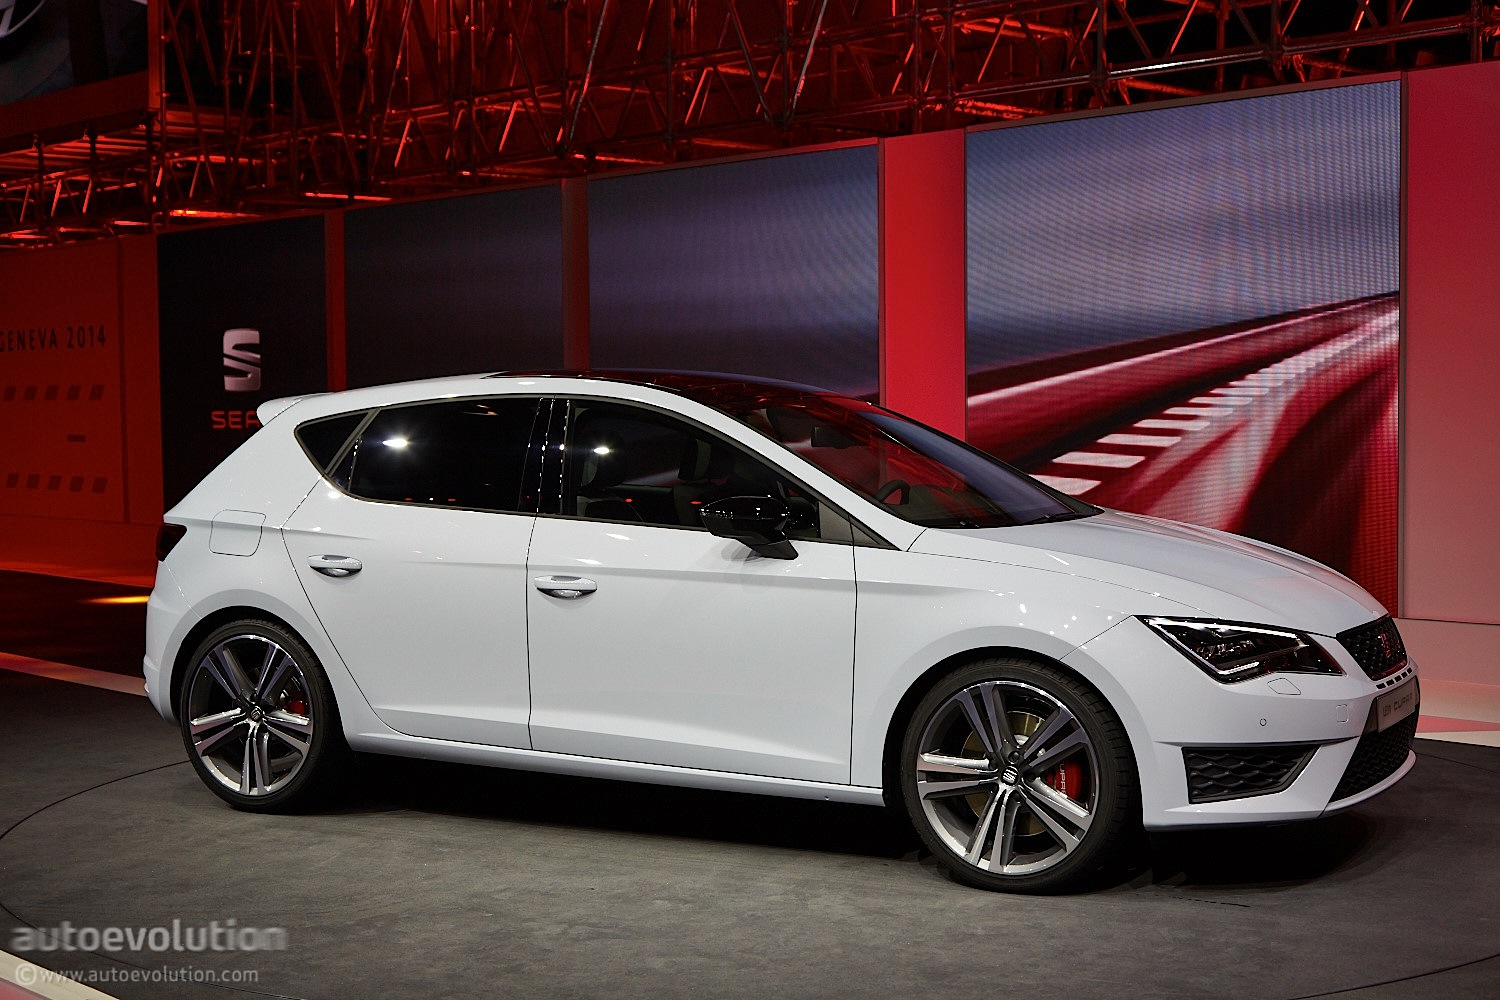 2014 Seat Leon Cupra Is The Hottest Of The Hot Hatches Live Photos Autoevolution